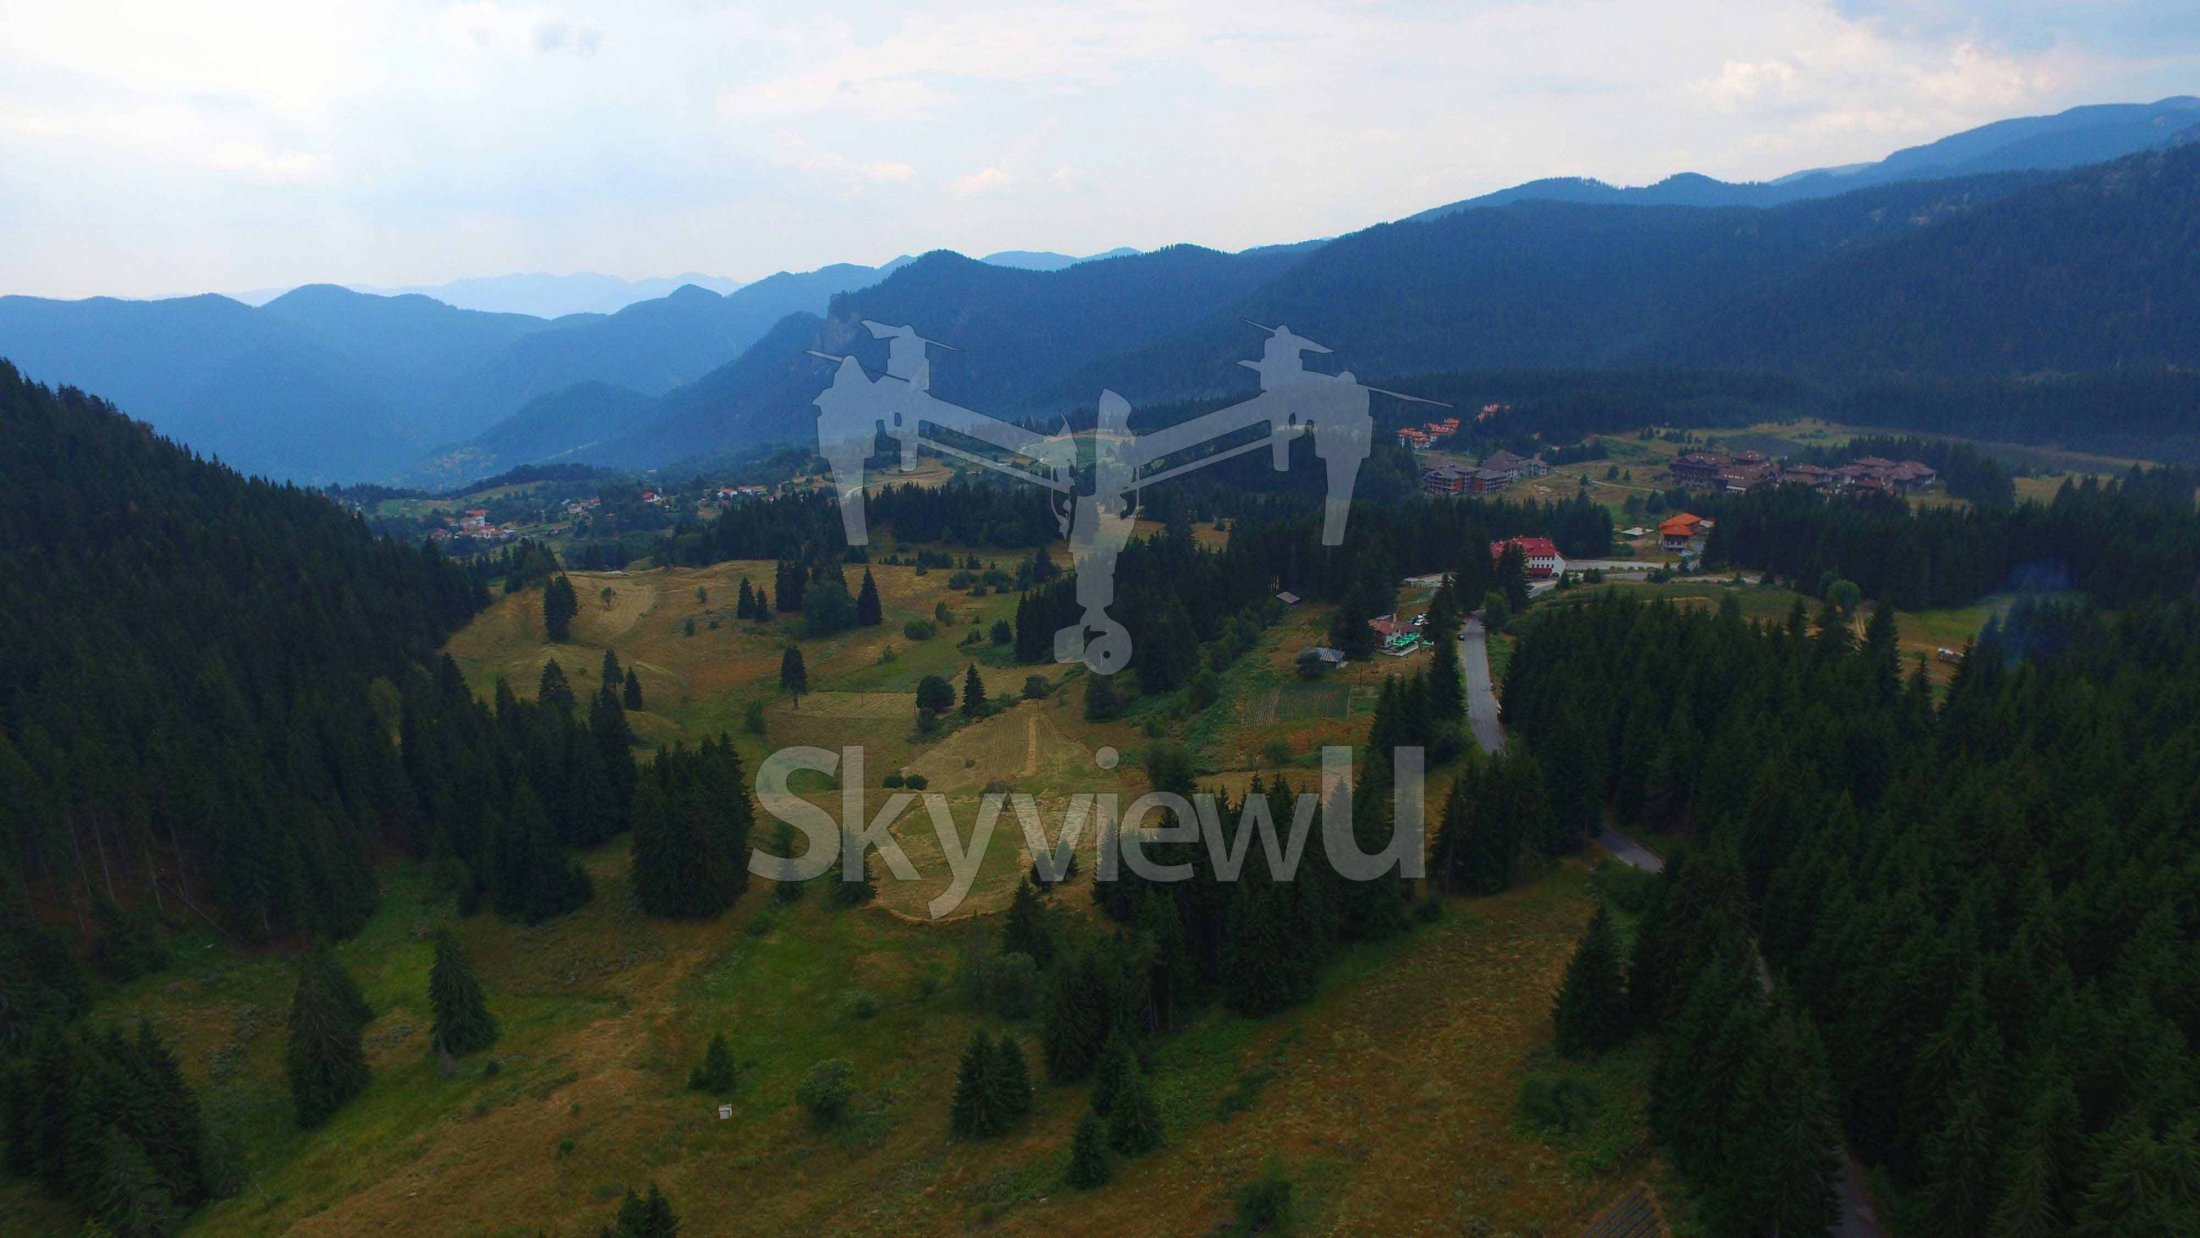 SkyviewU-Bulgaria-drone-photography-and-copter-aerial-video-with-DJI-Inspire-1-of-sightseeings-,-nature-,-historical-monuments-,-historical-places-,-landscapes-,-tourist-attractions-and-national-treasures13